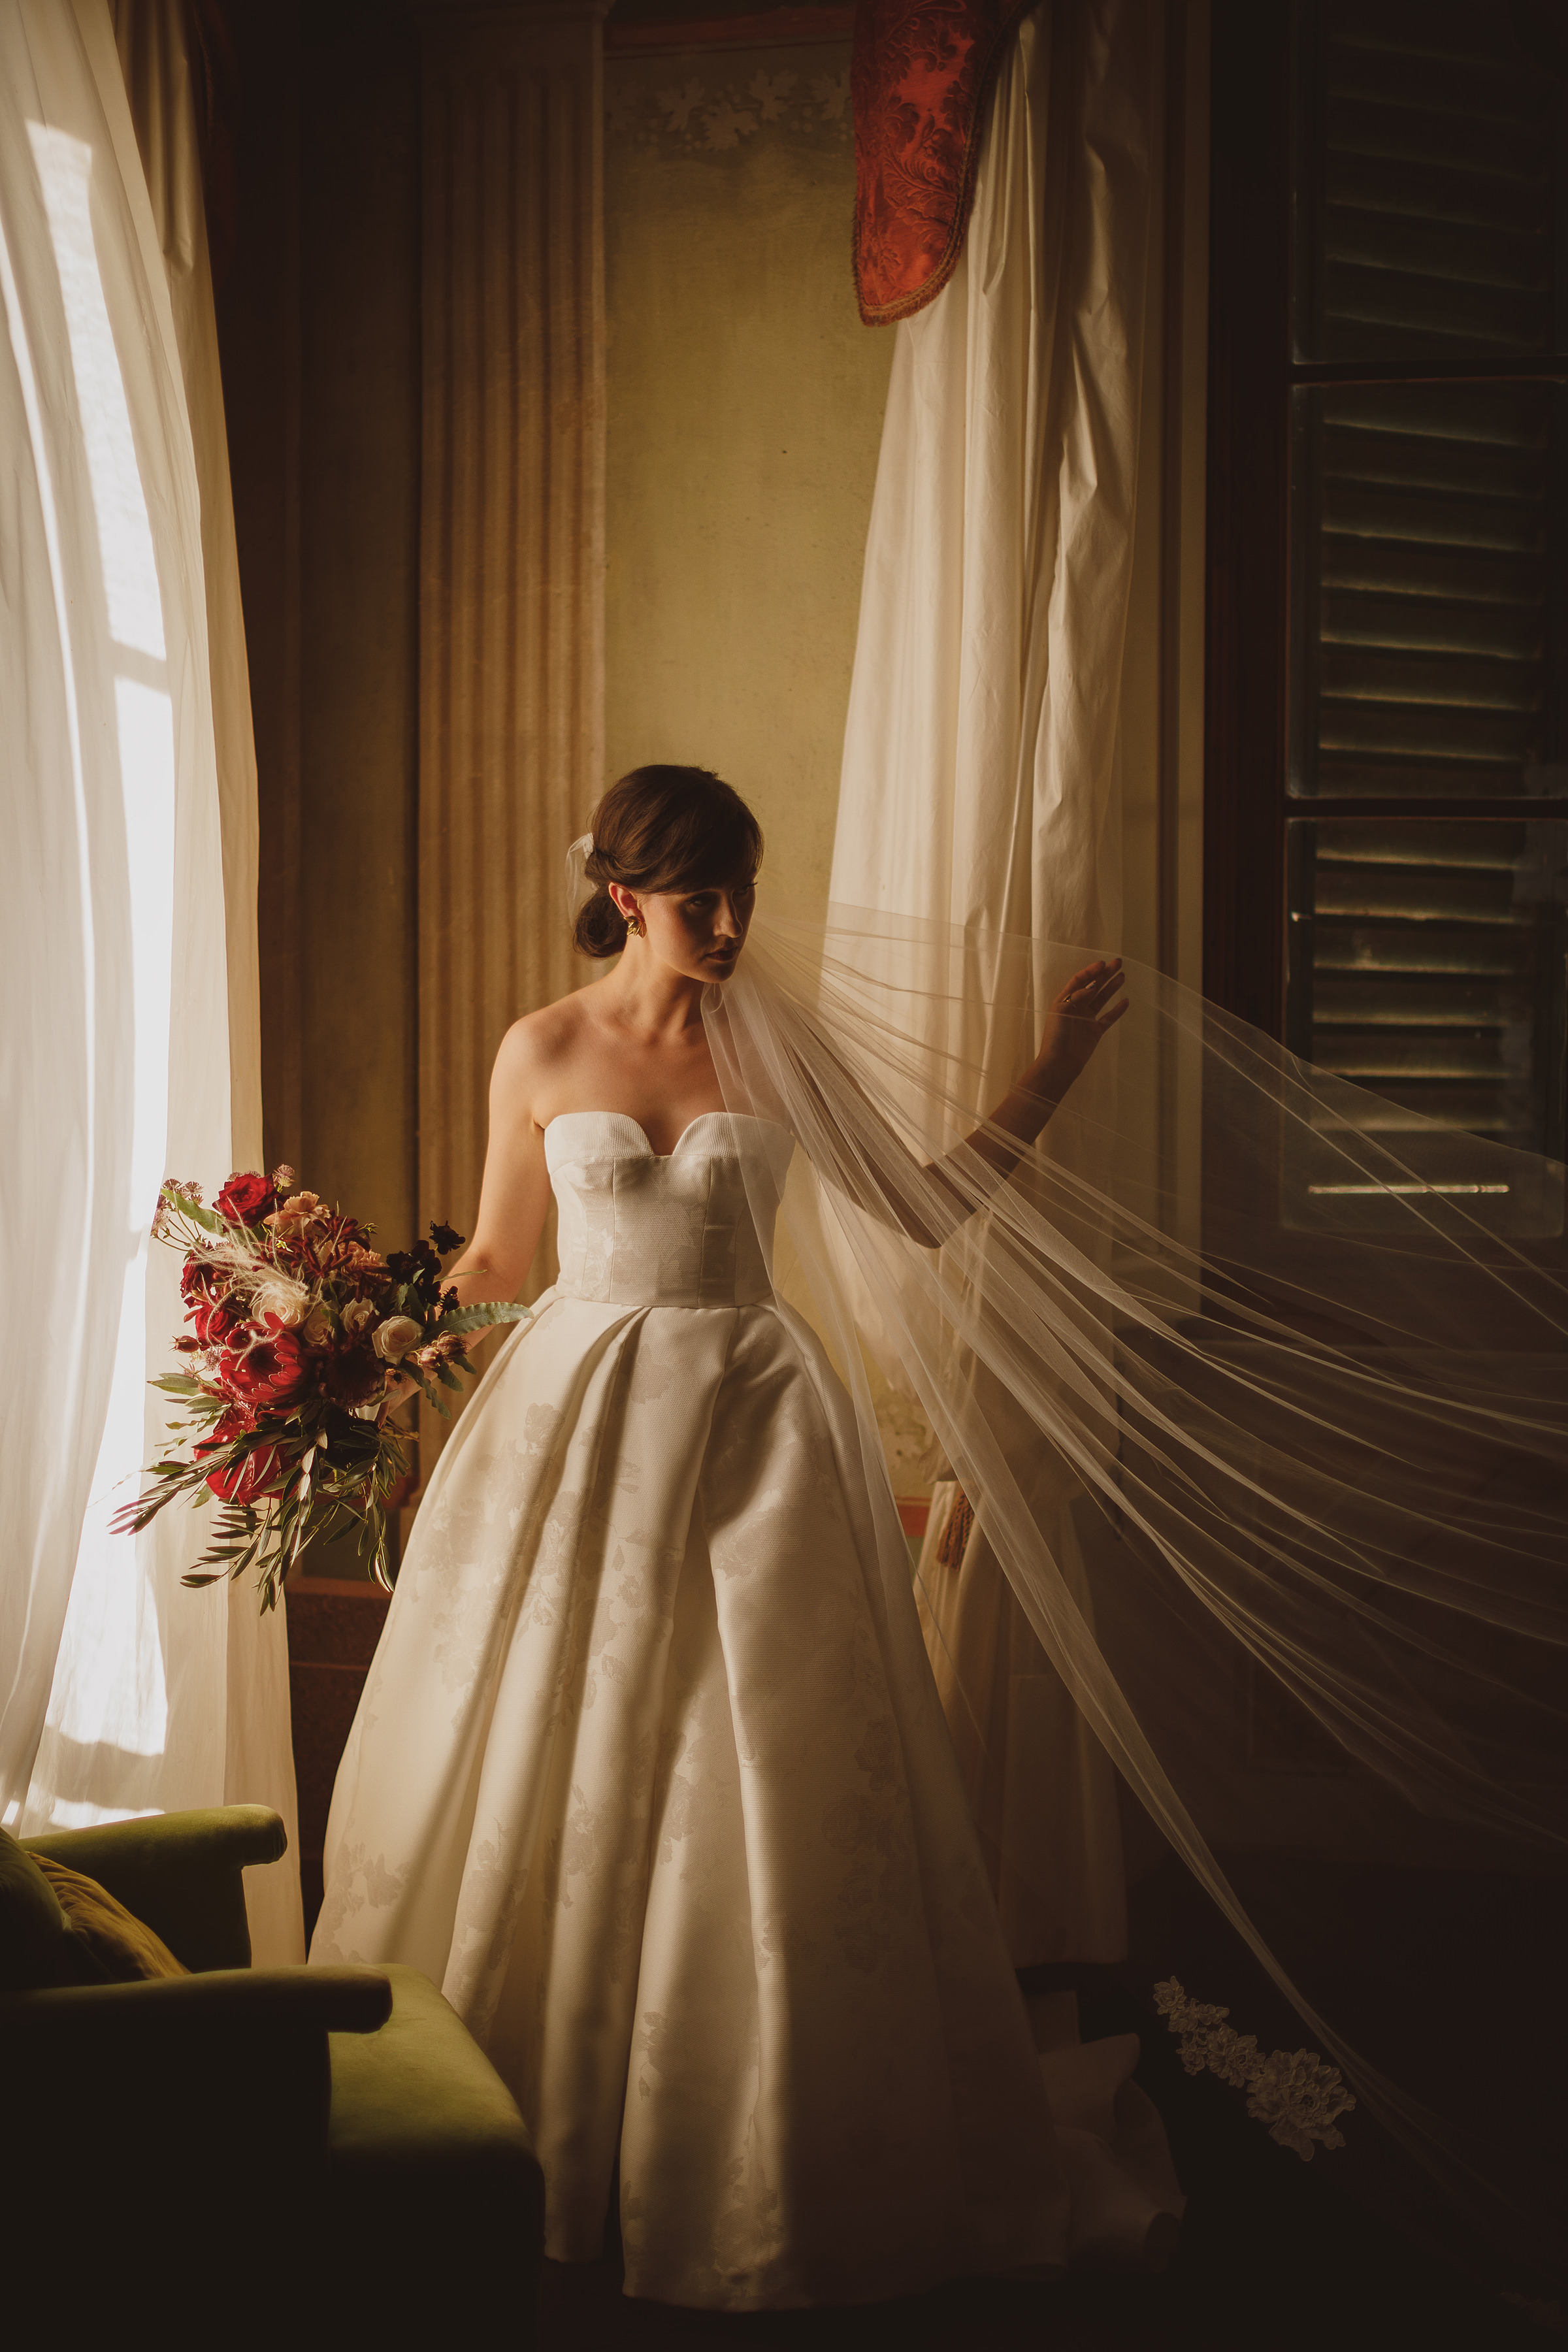 Bride holding bouquet and long veil - photo by Ed Peers Photography